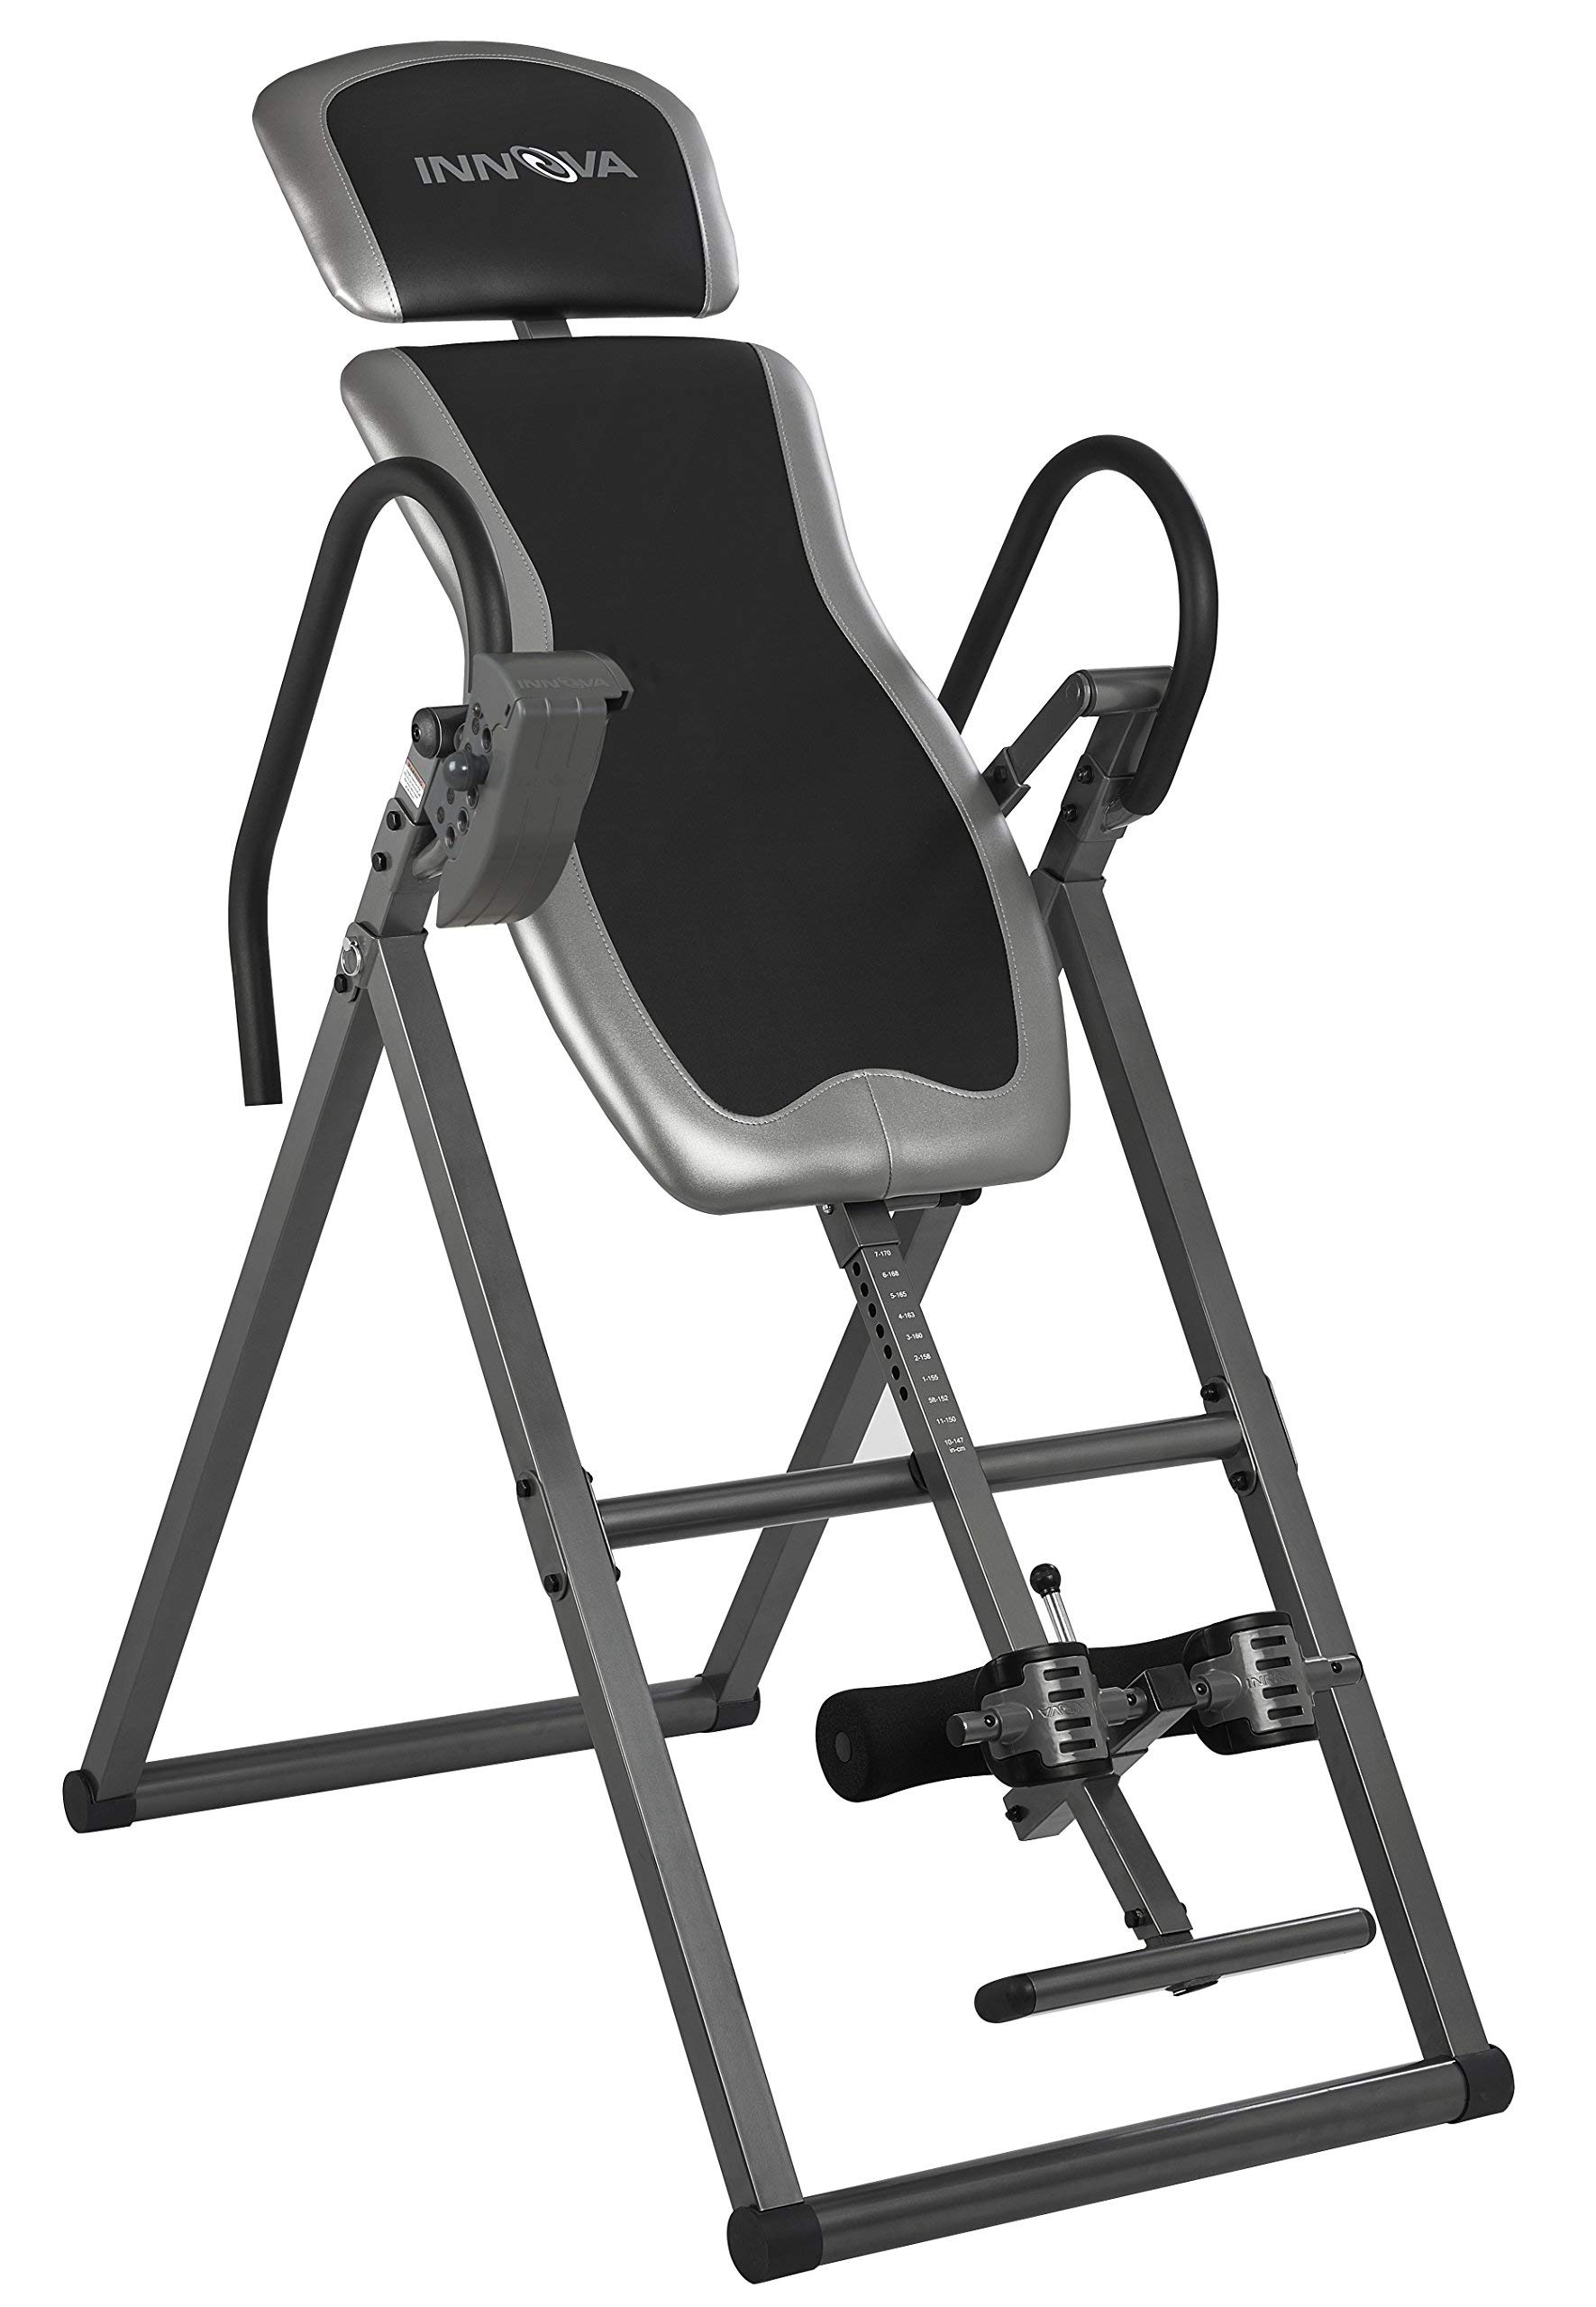 Innova ITX9600 Heavy Duty Inversion Table with Adjustable Headrest & Protective Cover (Renewed)